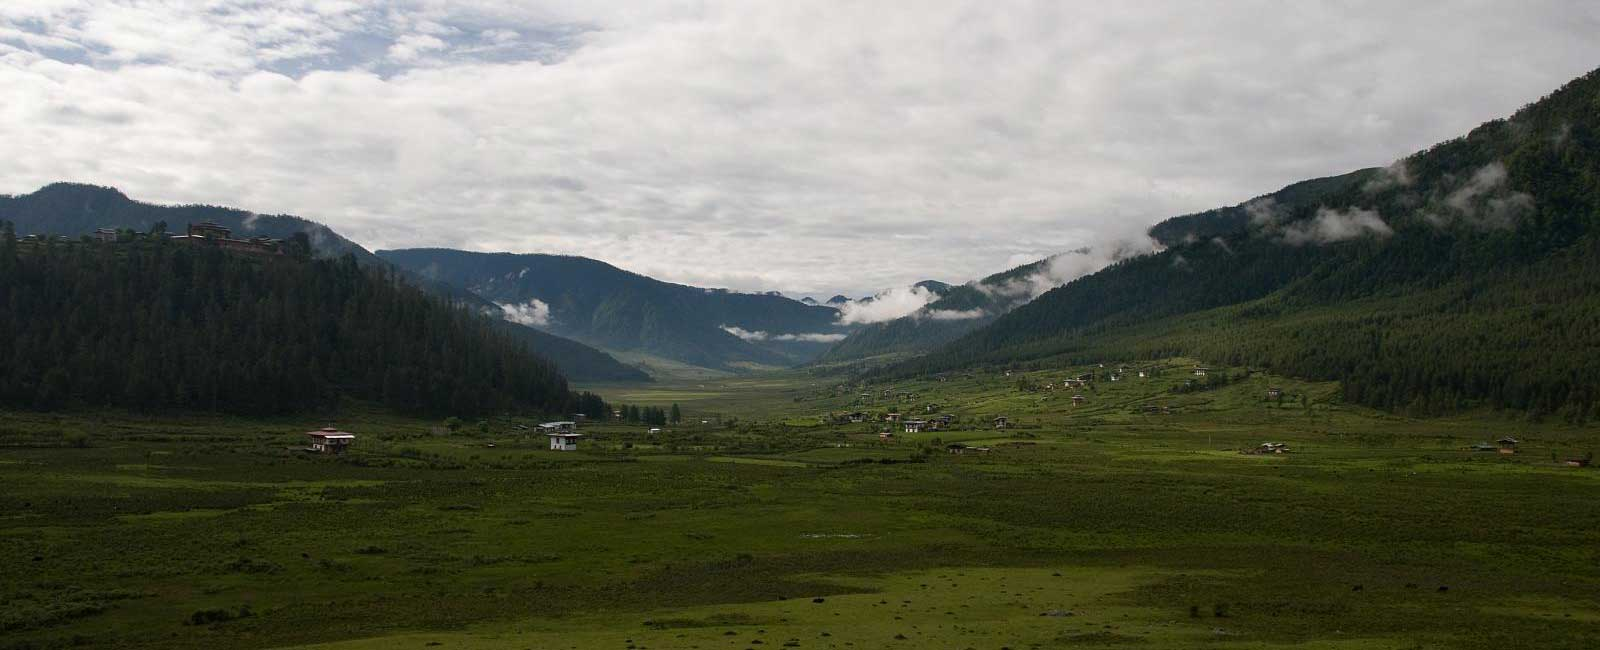 Bhutan Highlights